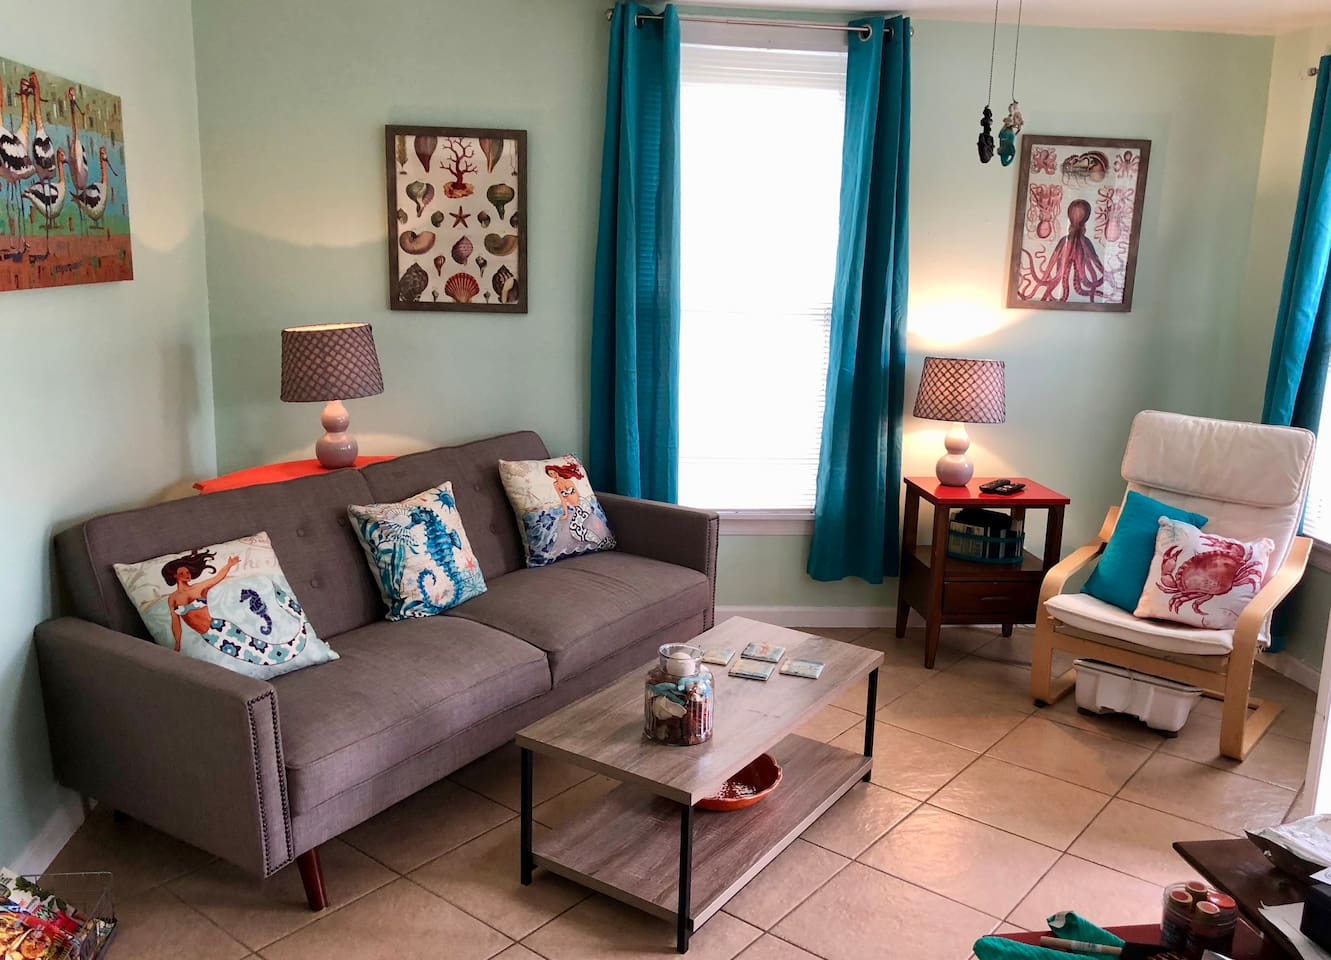 A living room to relax and enjoy with a fold down couch for guest or child to sleep on, windows to the landscaped yard and outdoor deck area